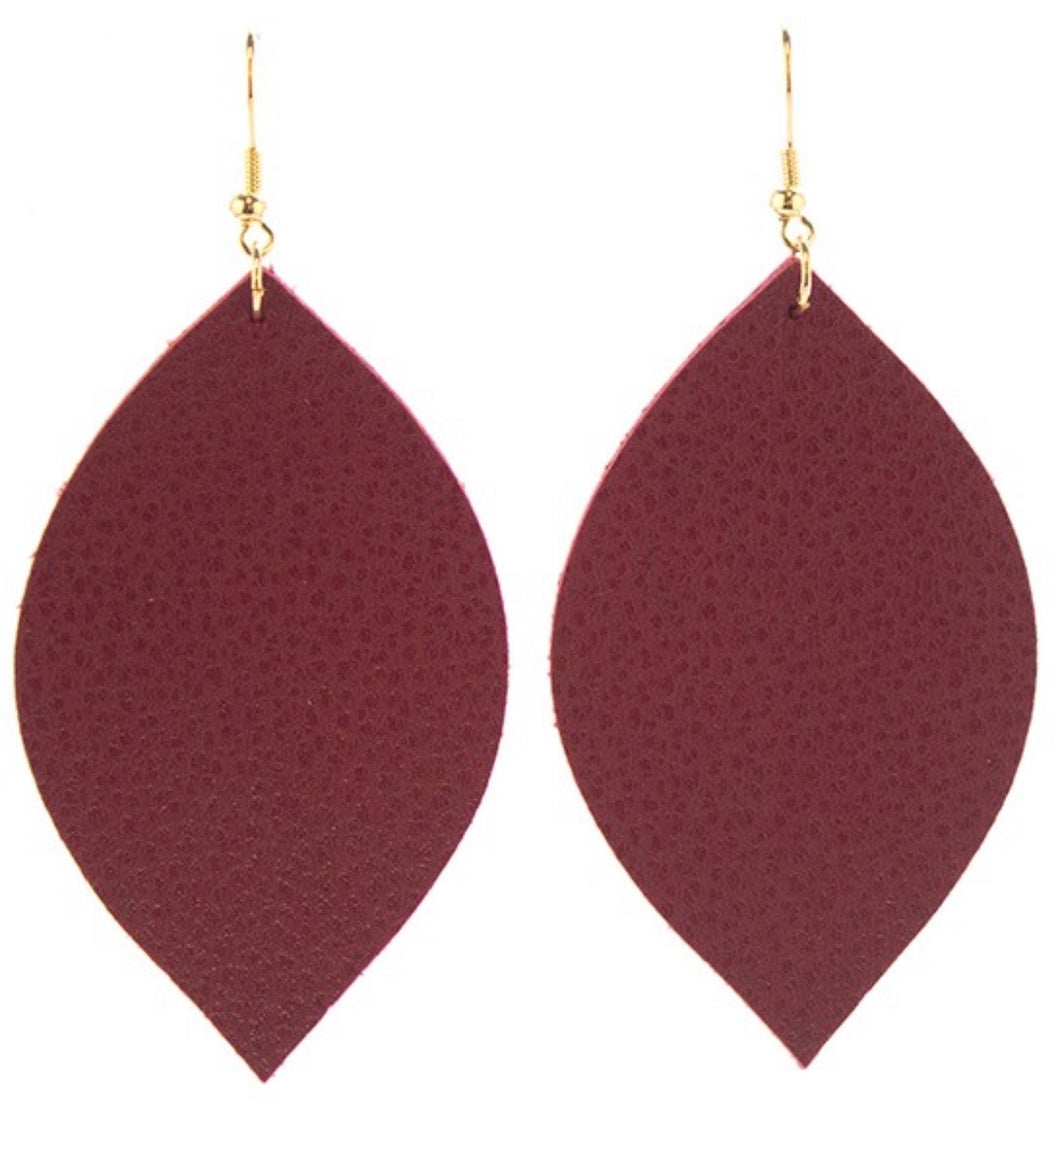 Burgundy Oval Leather Earrings